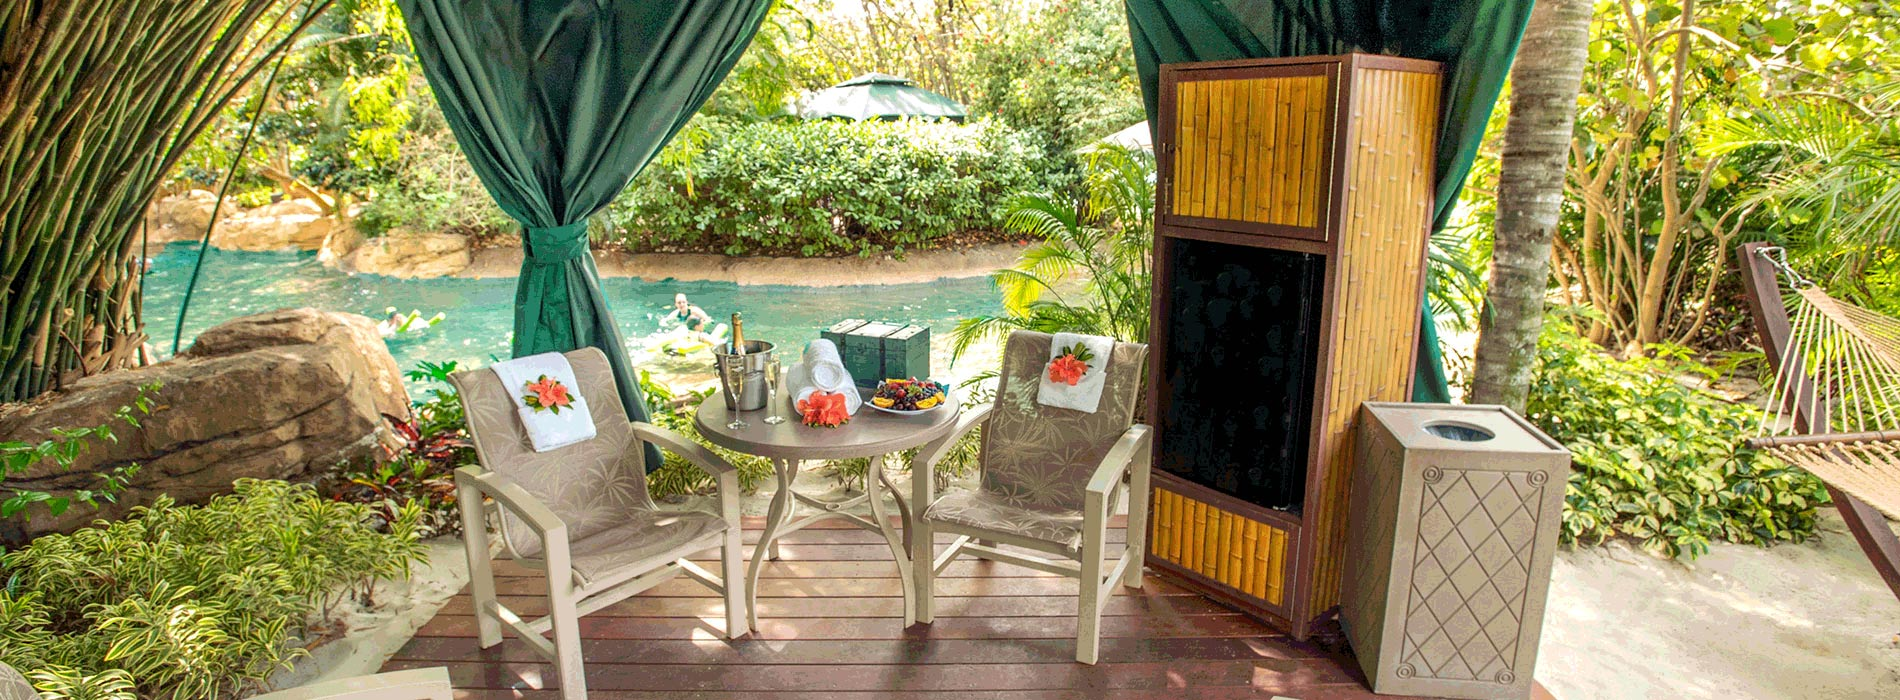 Reserve a cabana for your day at Discovery Cove Orlando